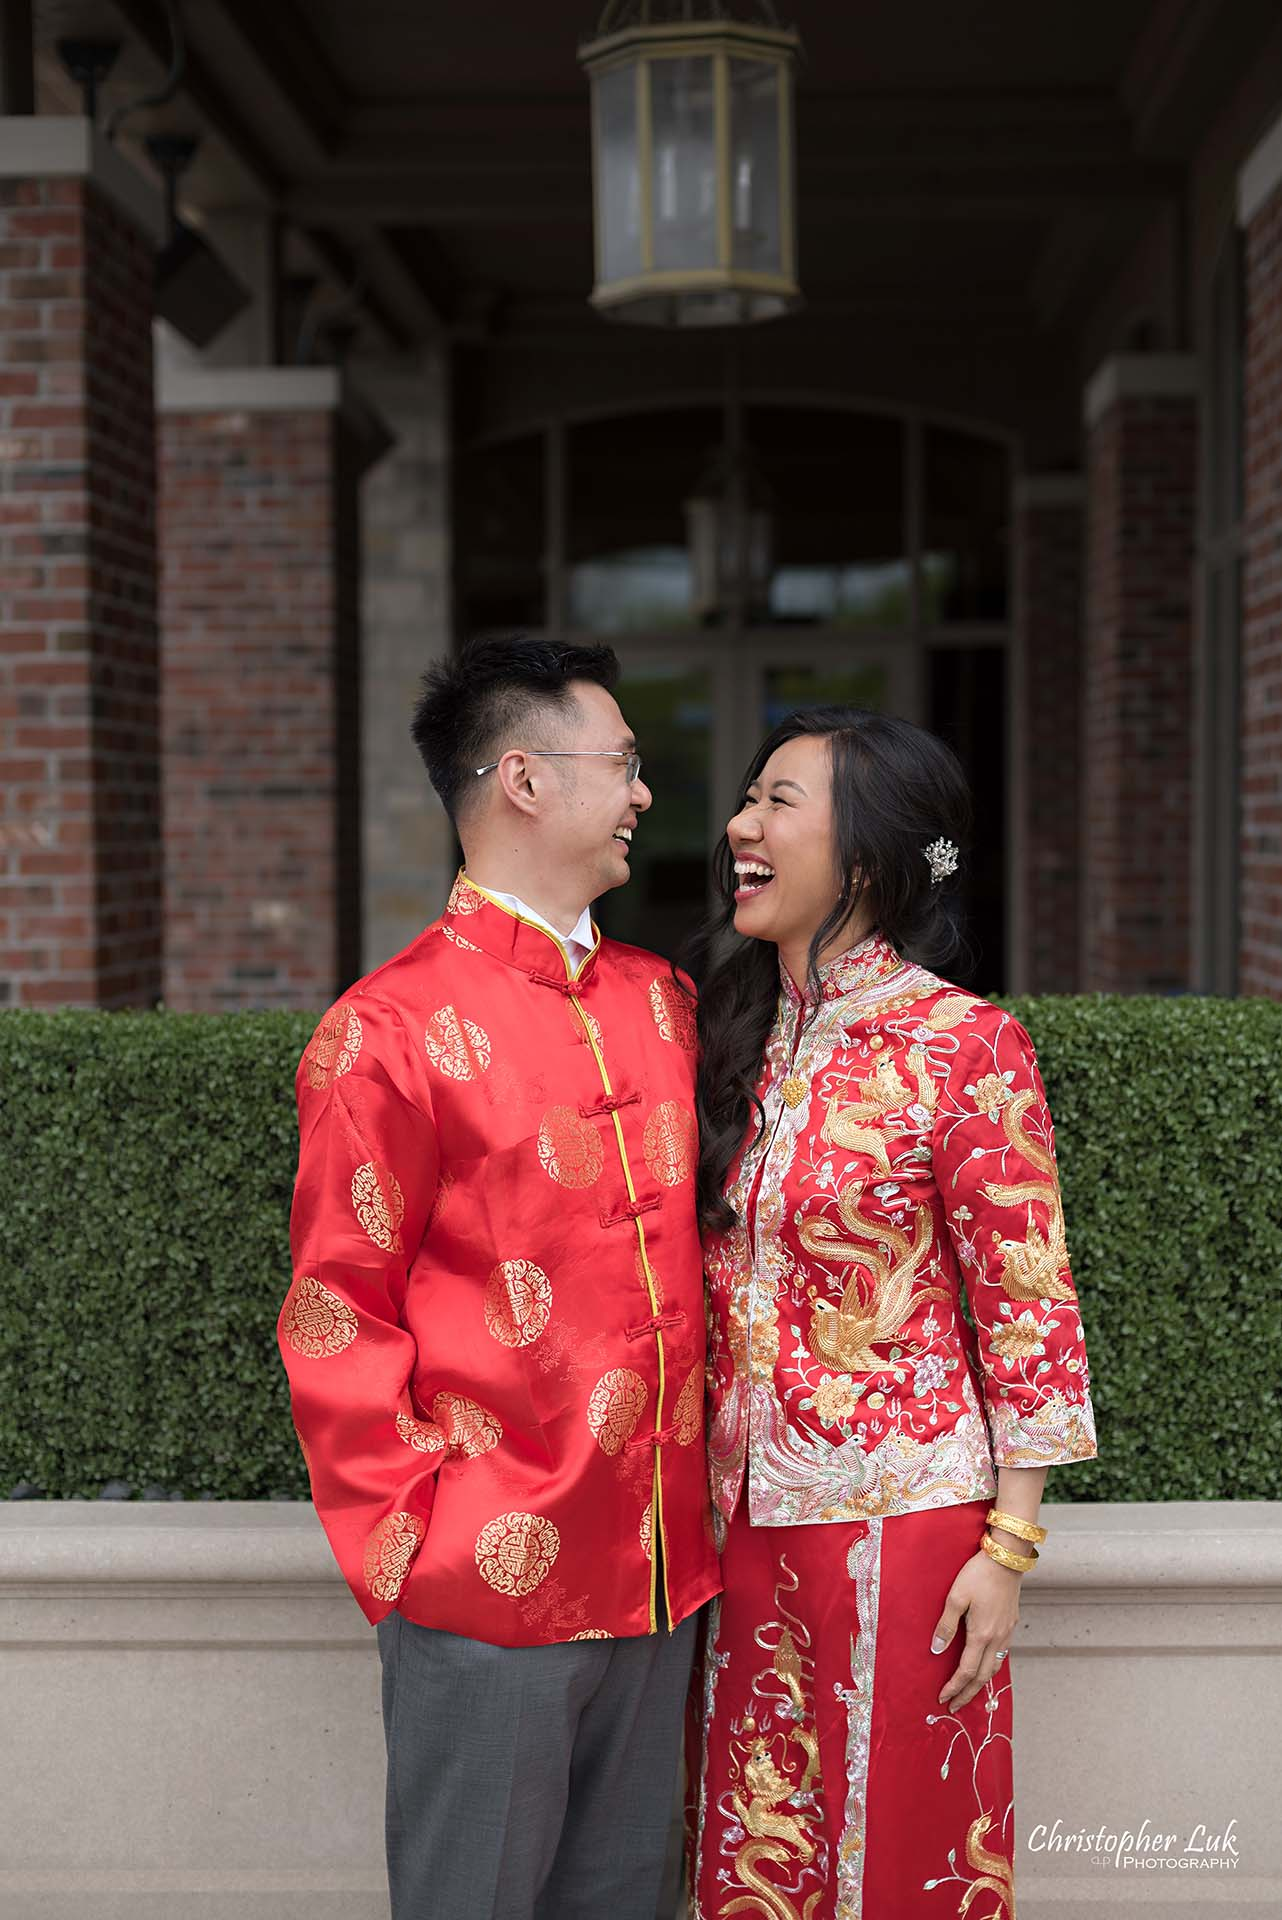 Christopher Luk Toronto Wedding Photographer Eagles Nest Golf Club Course Clubhouse Bride Groom Natural Candid Photojournalistic Chinese Red Tea Ceremony Dress Qipao Cheongsam Kua Laugh